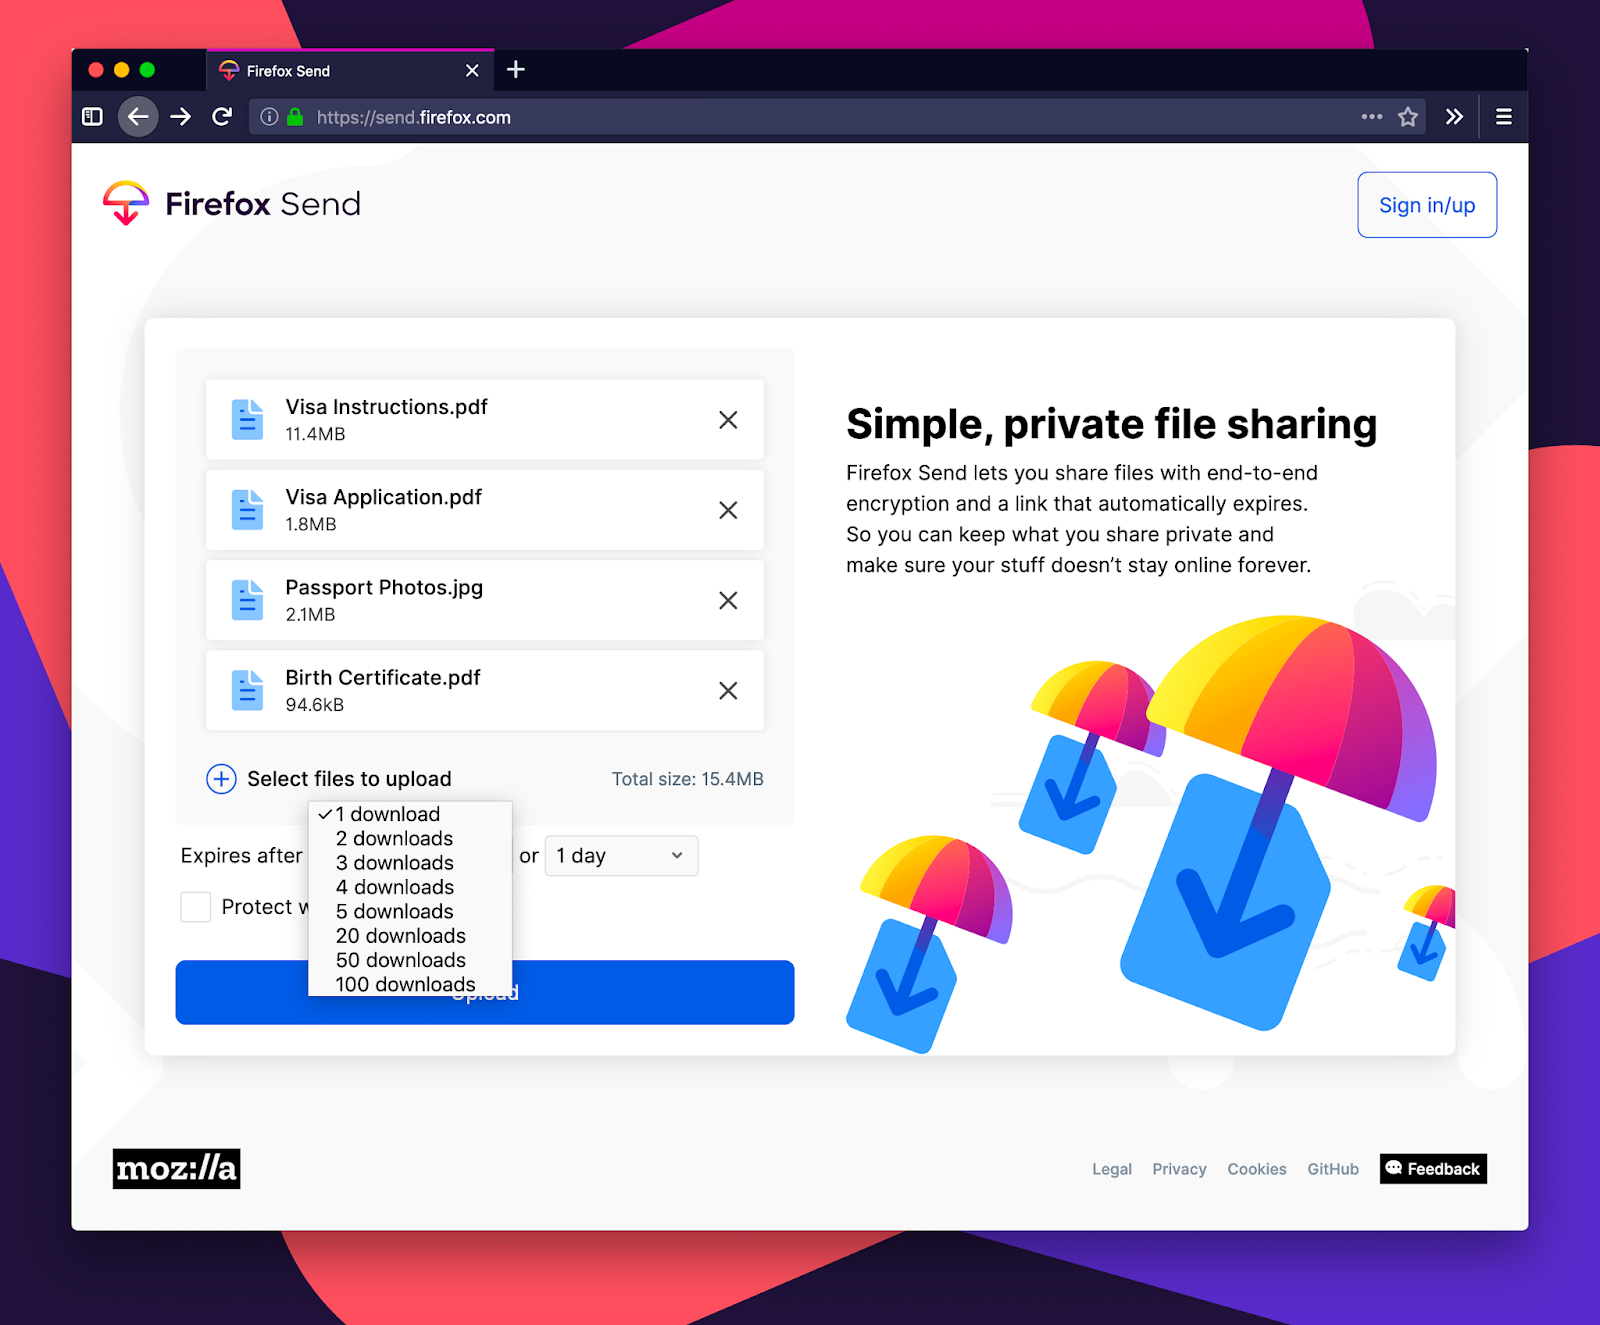 Mozilla launches Firefox Send - a free encrypted file sharing service